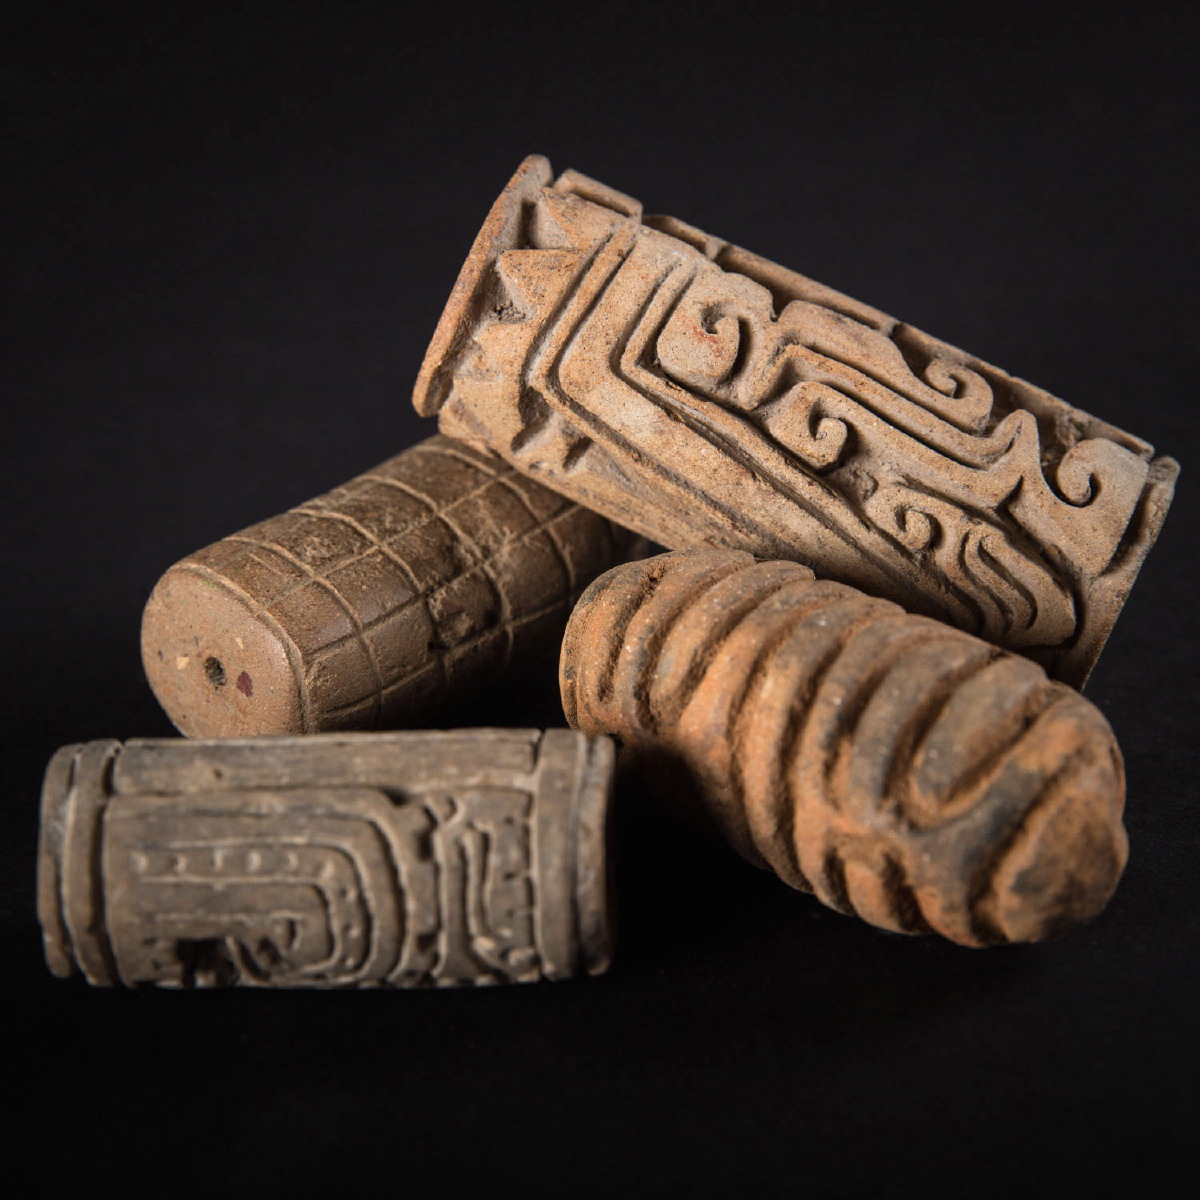 Photo of ancient-art-precolombian-roller-seals-tumaco-colombia